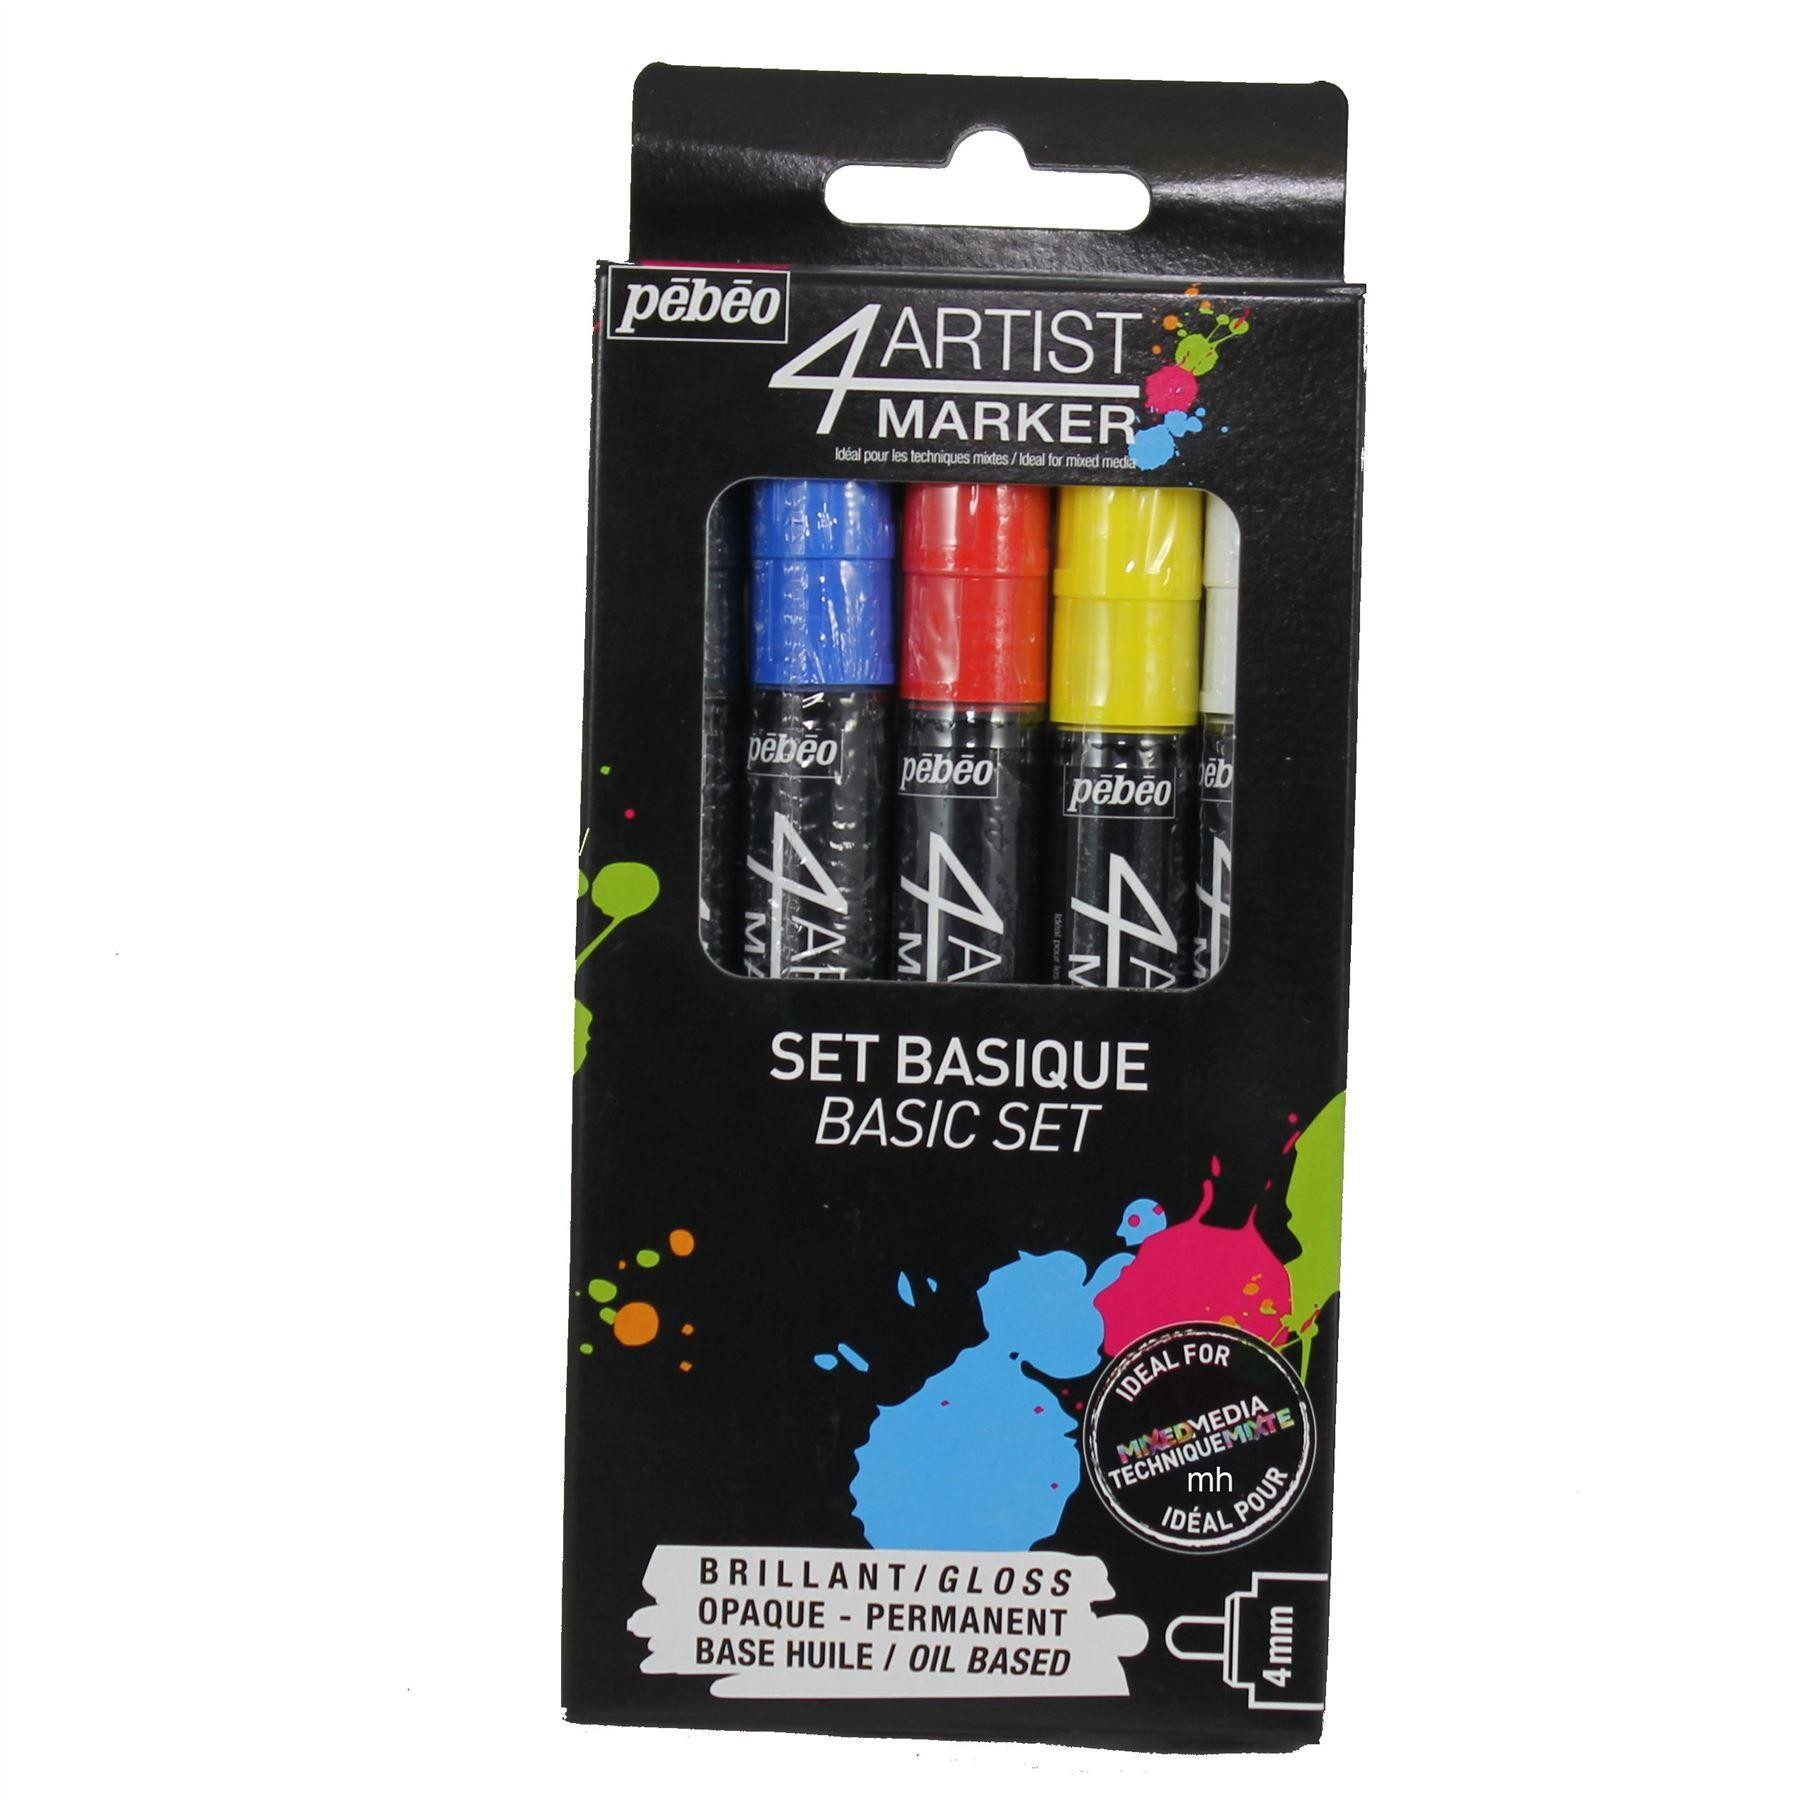 Pebeo 4 Artist Marker Basic Set 5 colours 4mm nibs